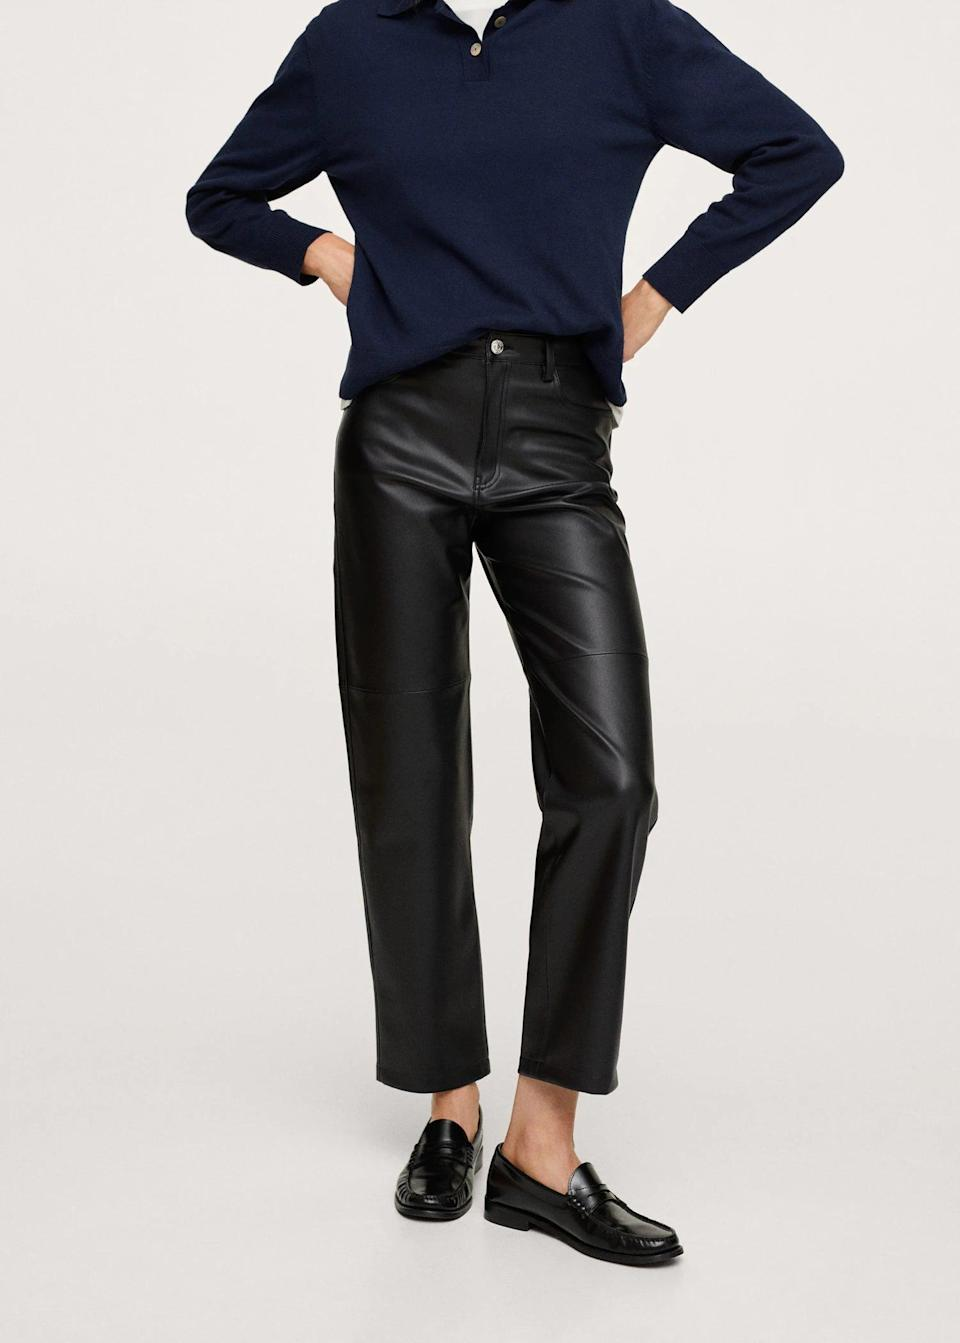 <p>Leather is a popular fabric during the fall, and for good reason. These <span>Leather Trousers</span> ($60) look glossy and put-together, making them a good base to create a chic everyday or otherwise dressy look.</p>